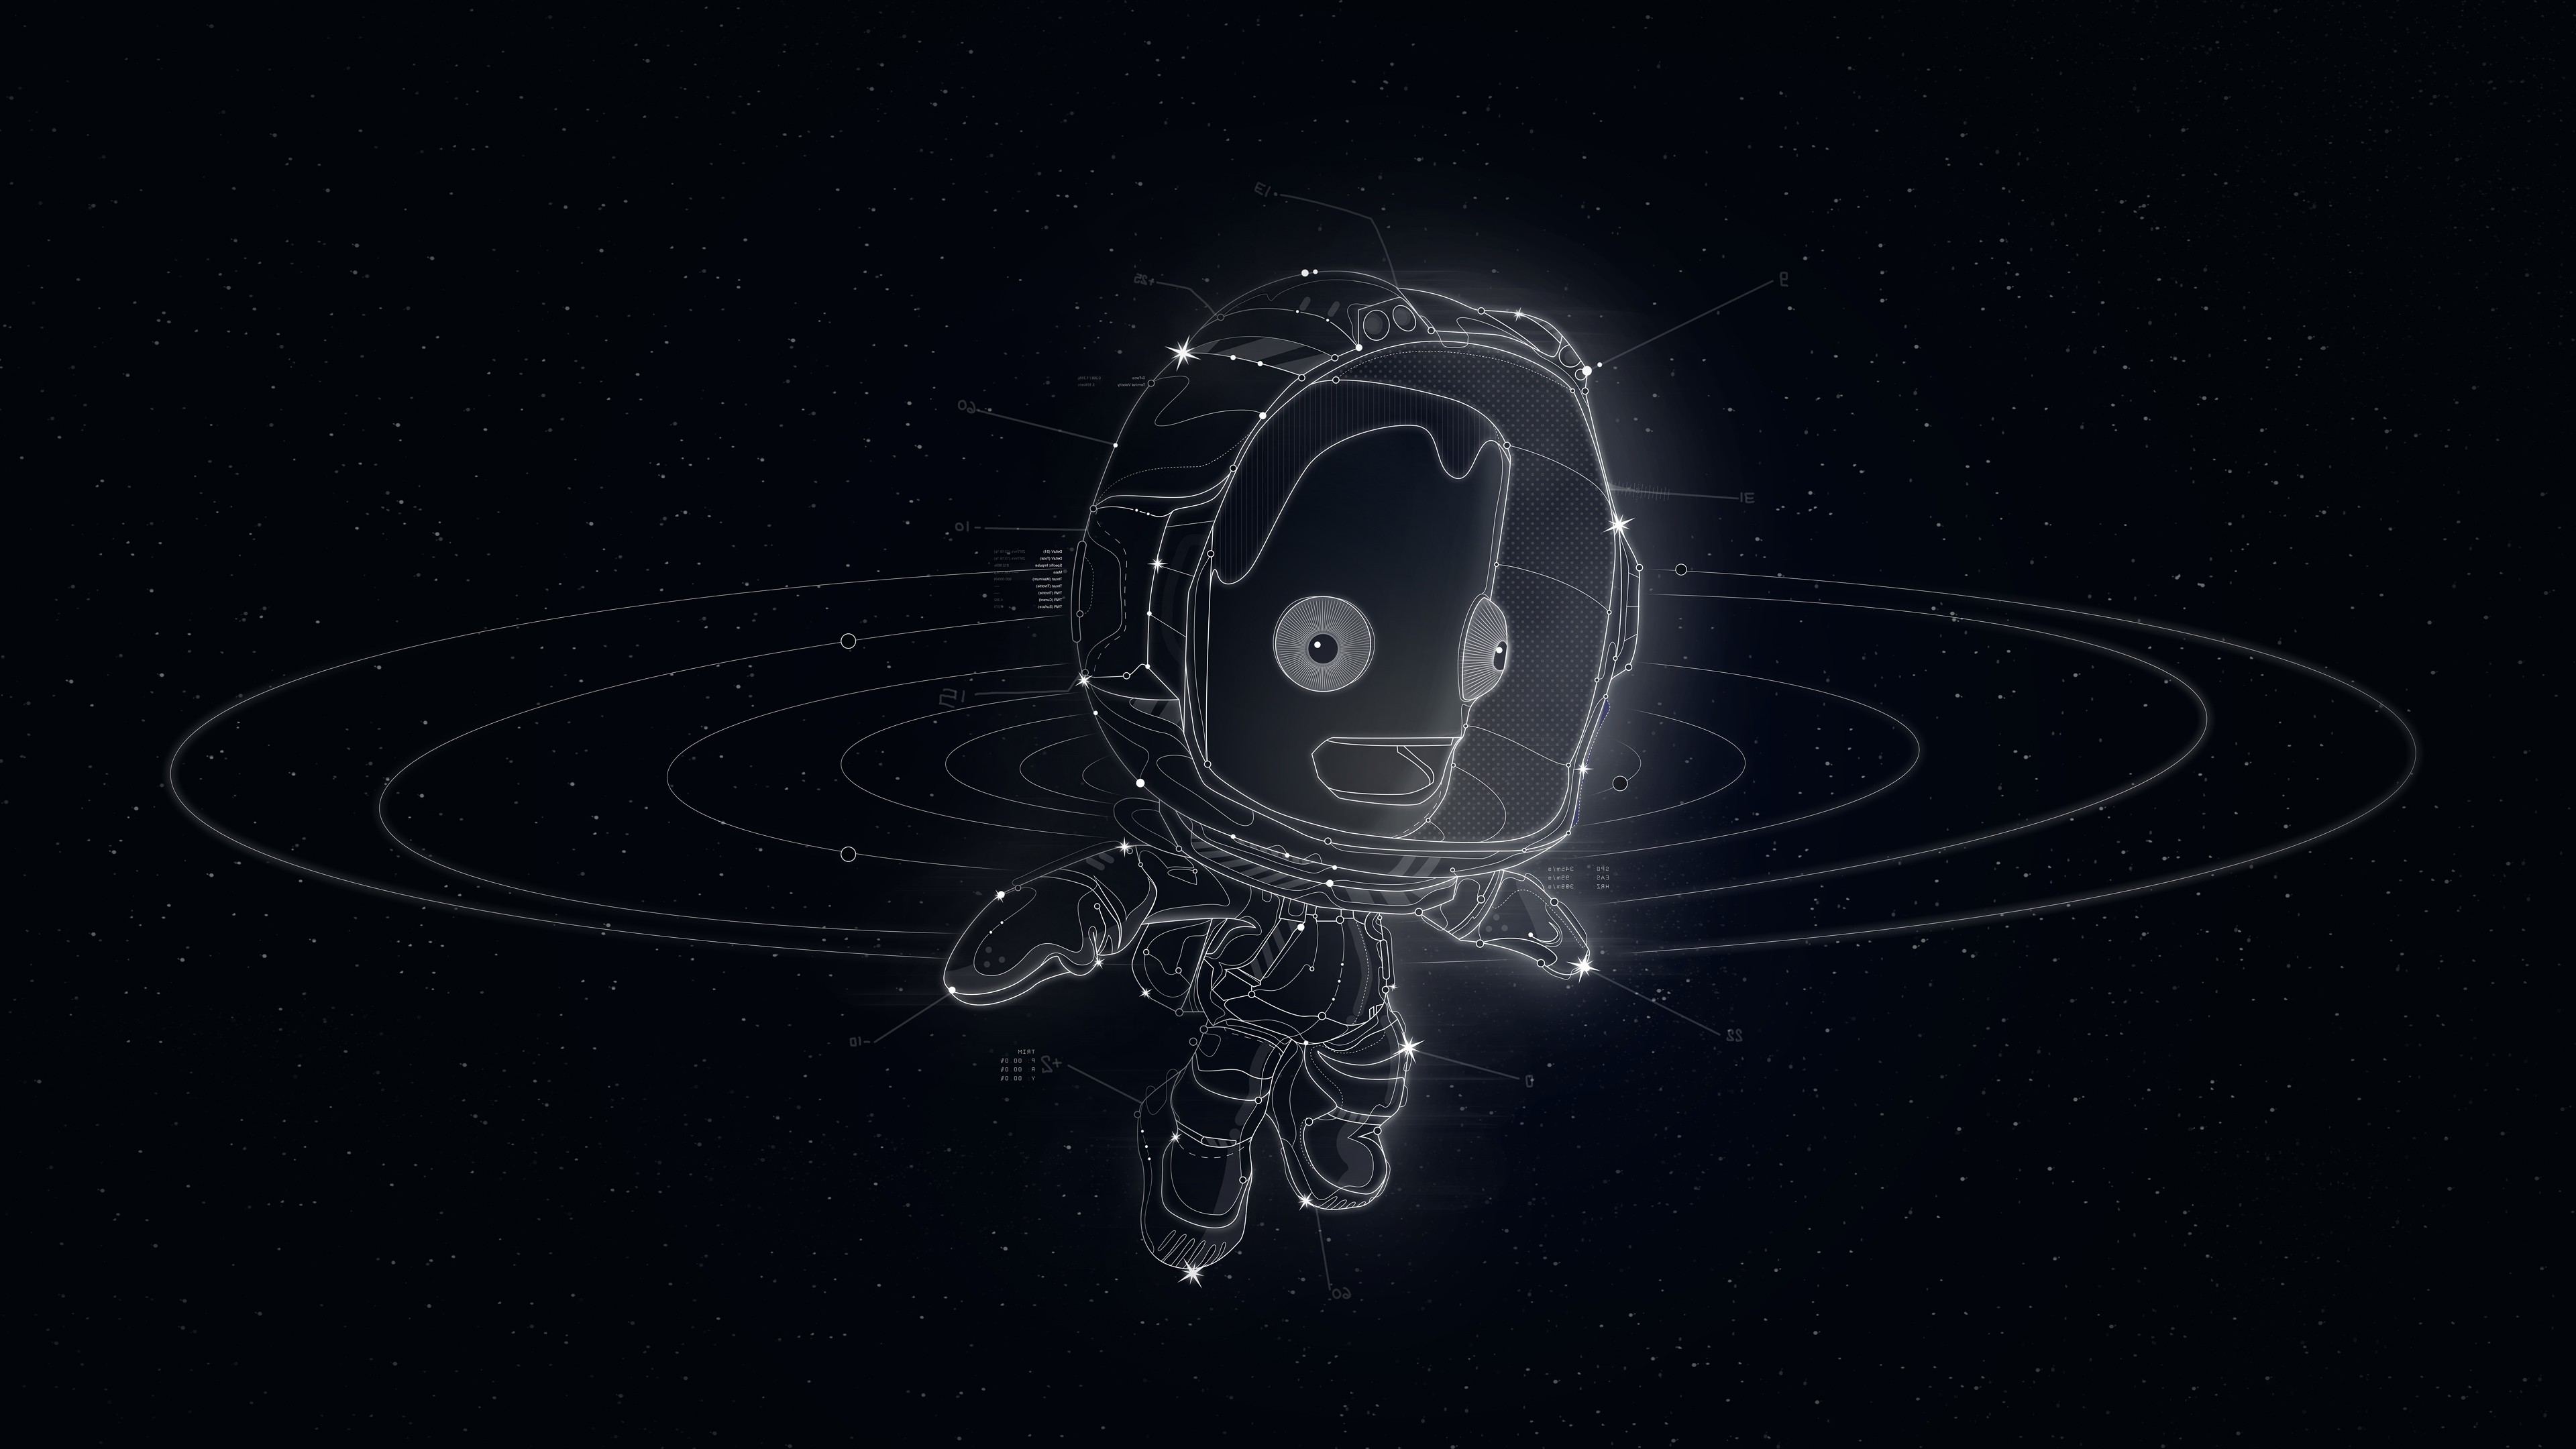 Kerbal Space Program Wallpapers HD Desktop and Mobile Backgrounds 3840x2160